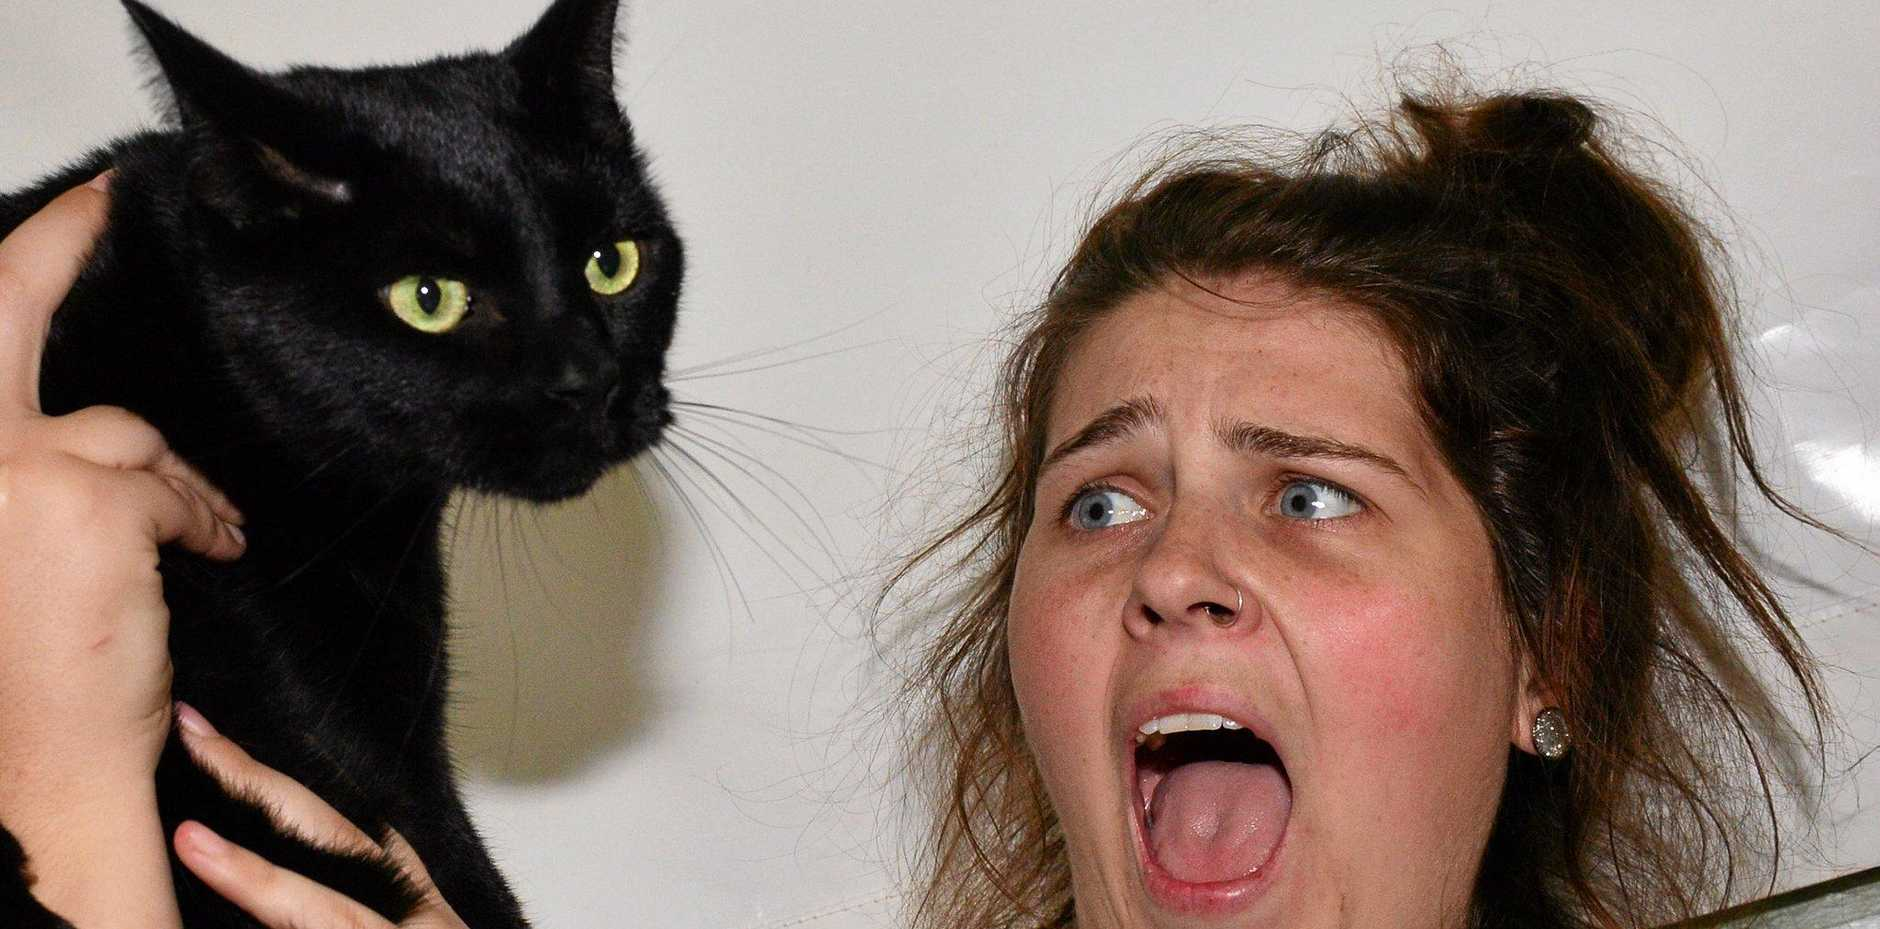 It's Friday the 13th and some people fear black cats. SCAR staff member Chané Venter with 'Black Jack'.